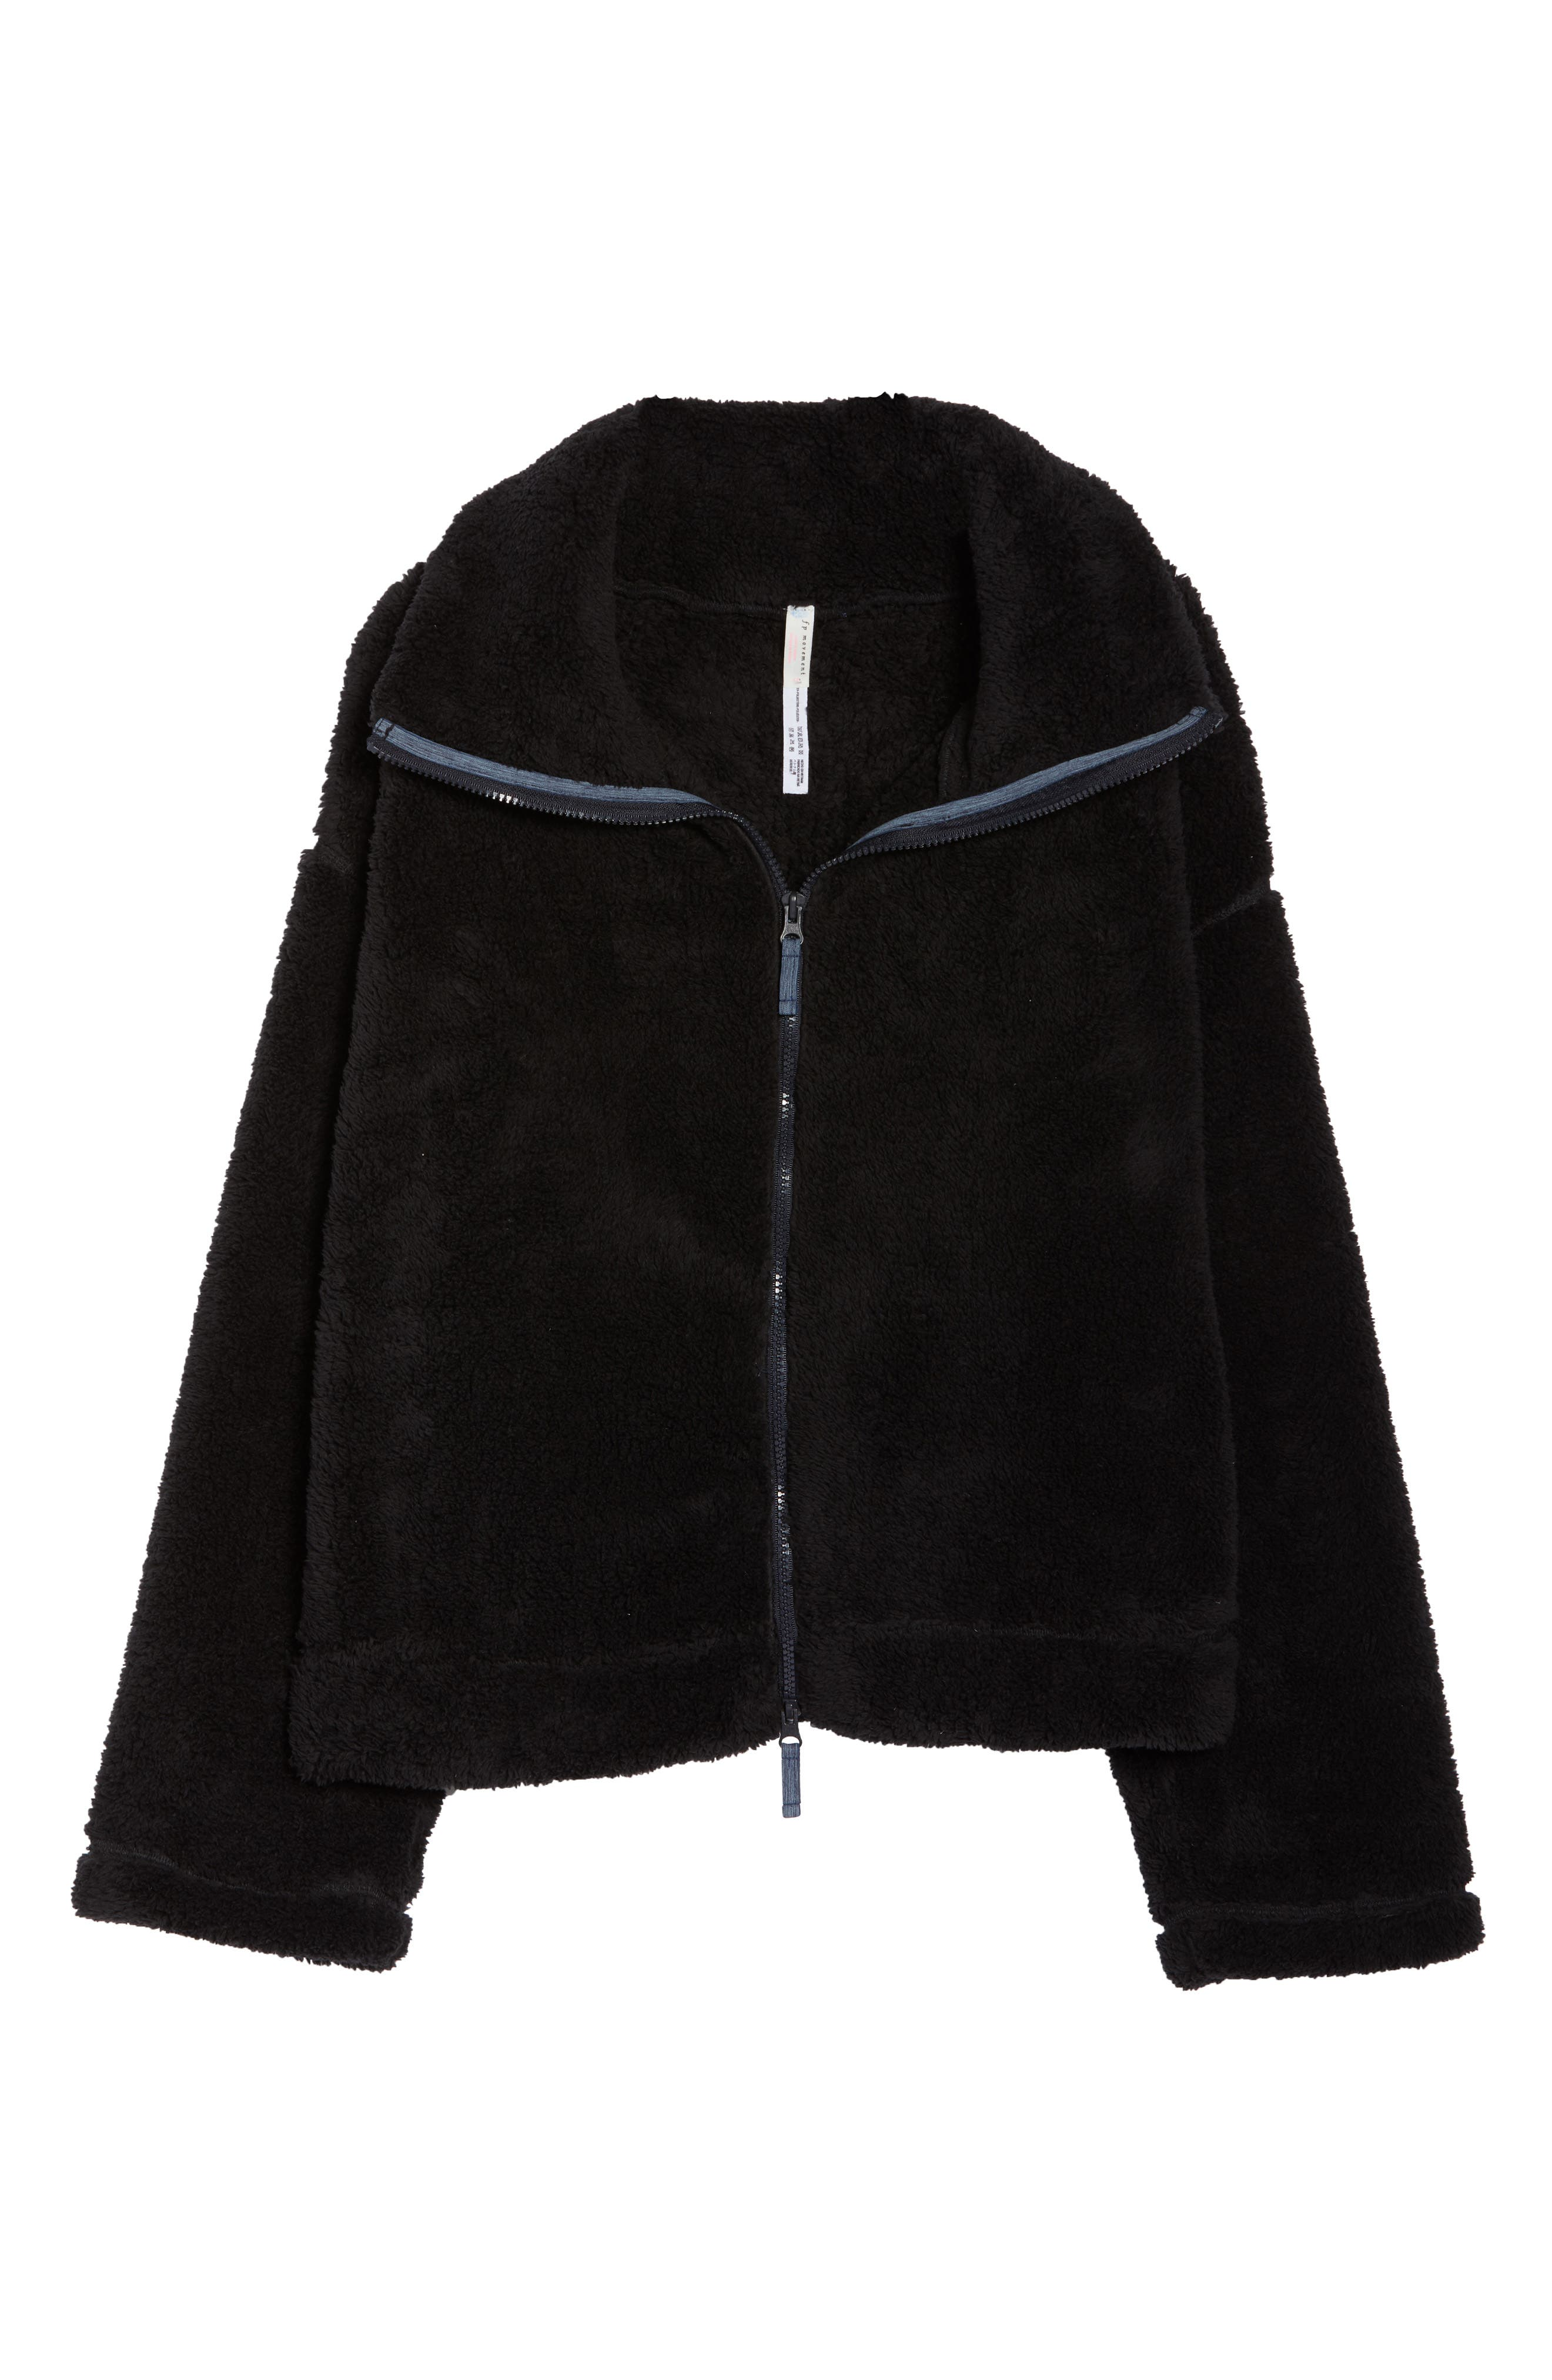 Dazed Fleece Jacket,                             Alternate thumbnail 7, color,                             BLACK